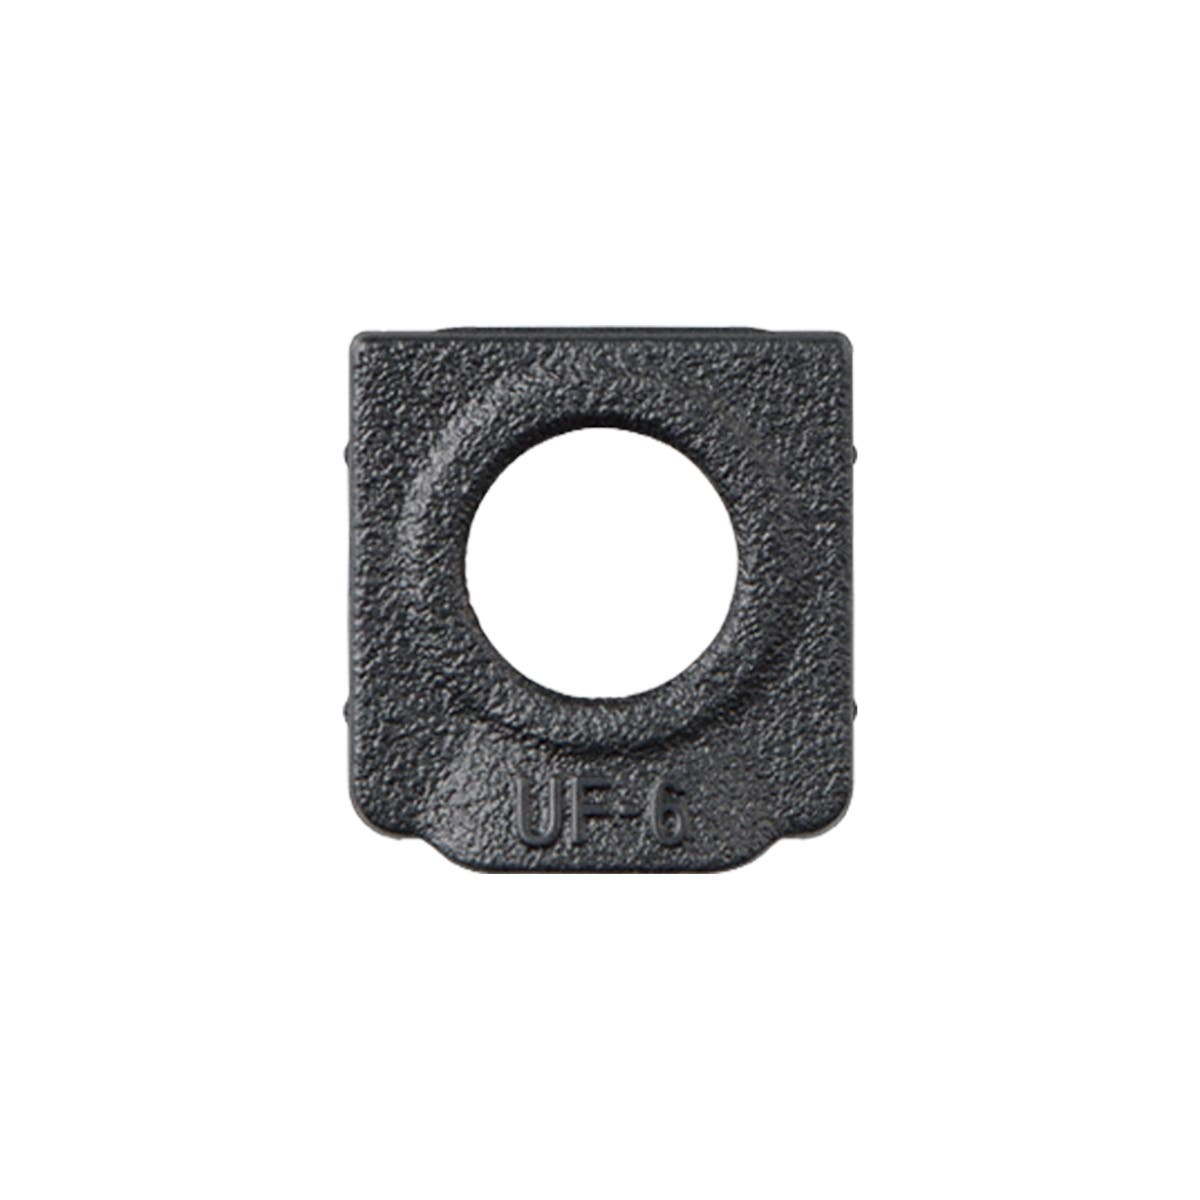 UF-6 Connector Cover for Stereo Mini Plug Cable